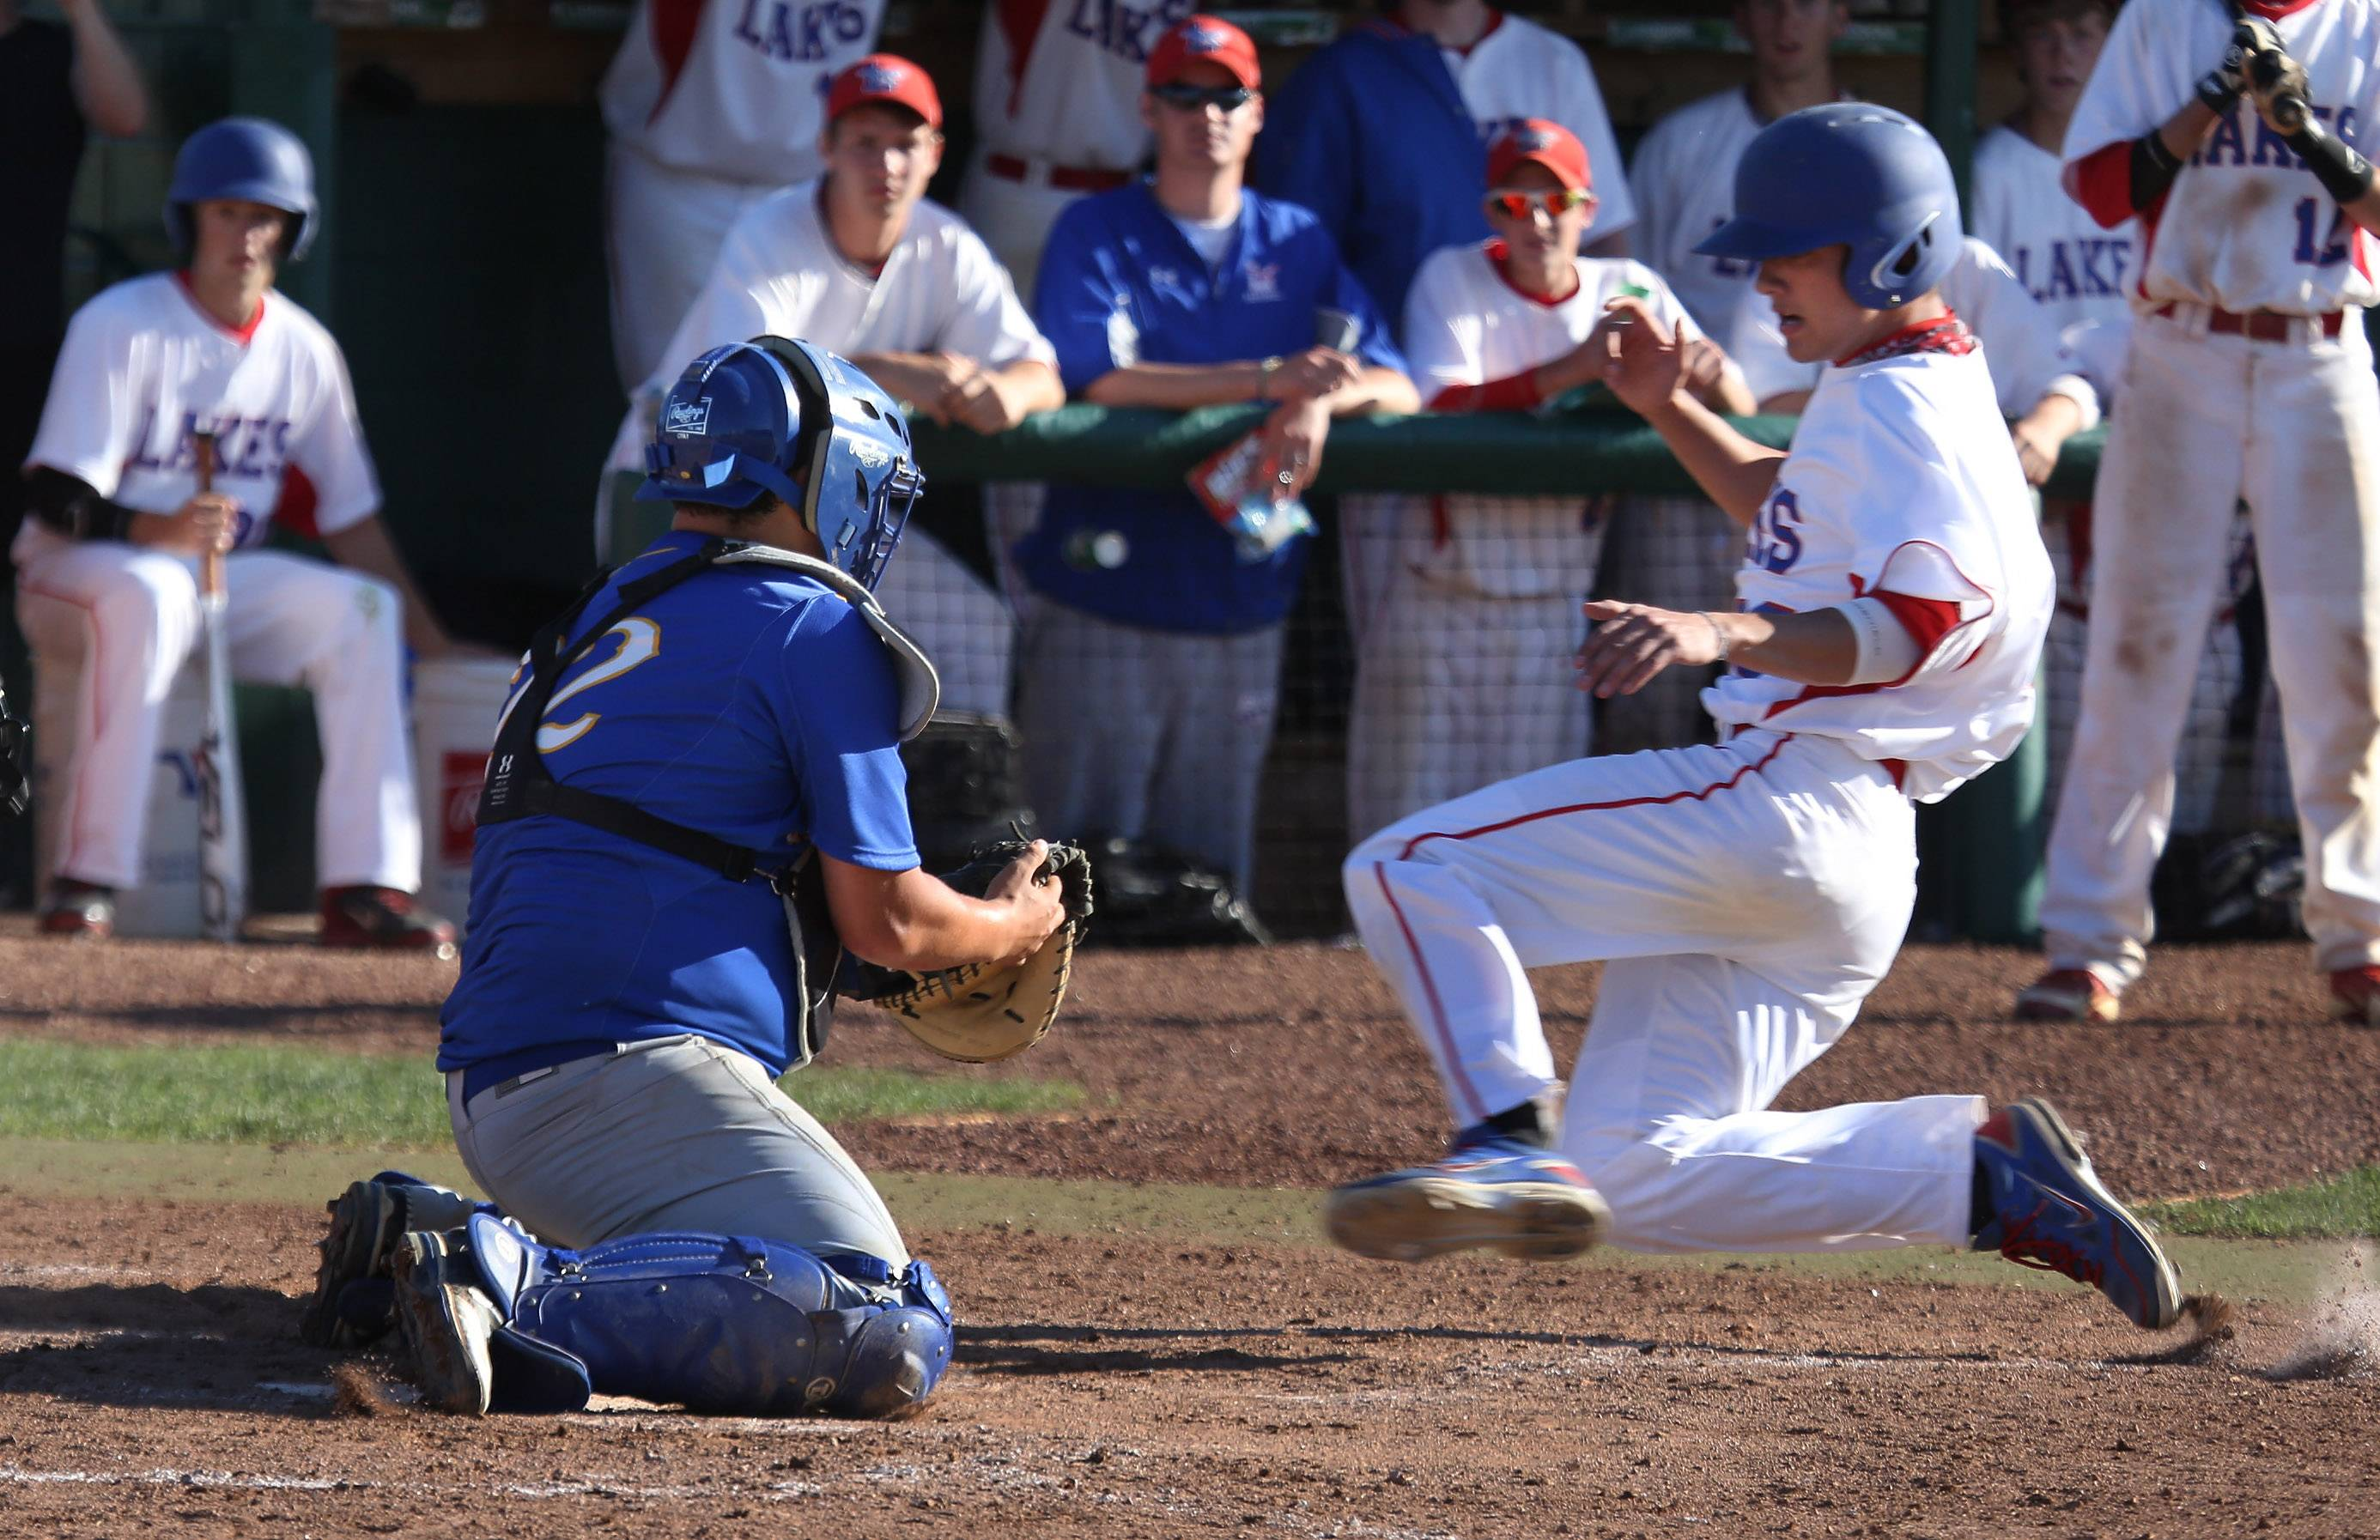 Lakes' Tyler Leon tries to slide into home plate under the tag of Johnsburg catcher B.J. Garcia in the sixth inning during the Class 3A regional semifinal game at Grayslake Central on Thursday.